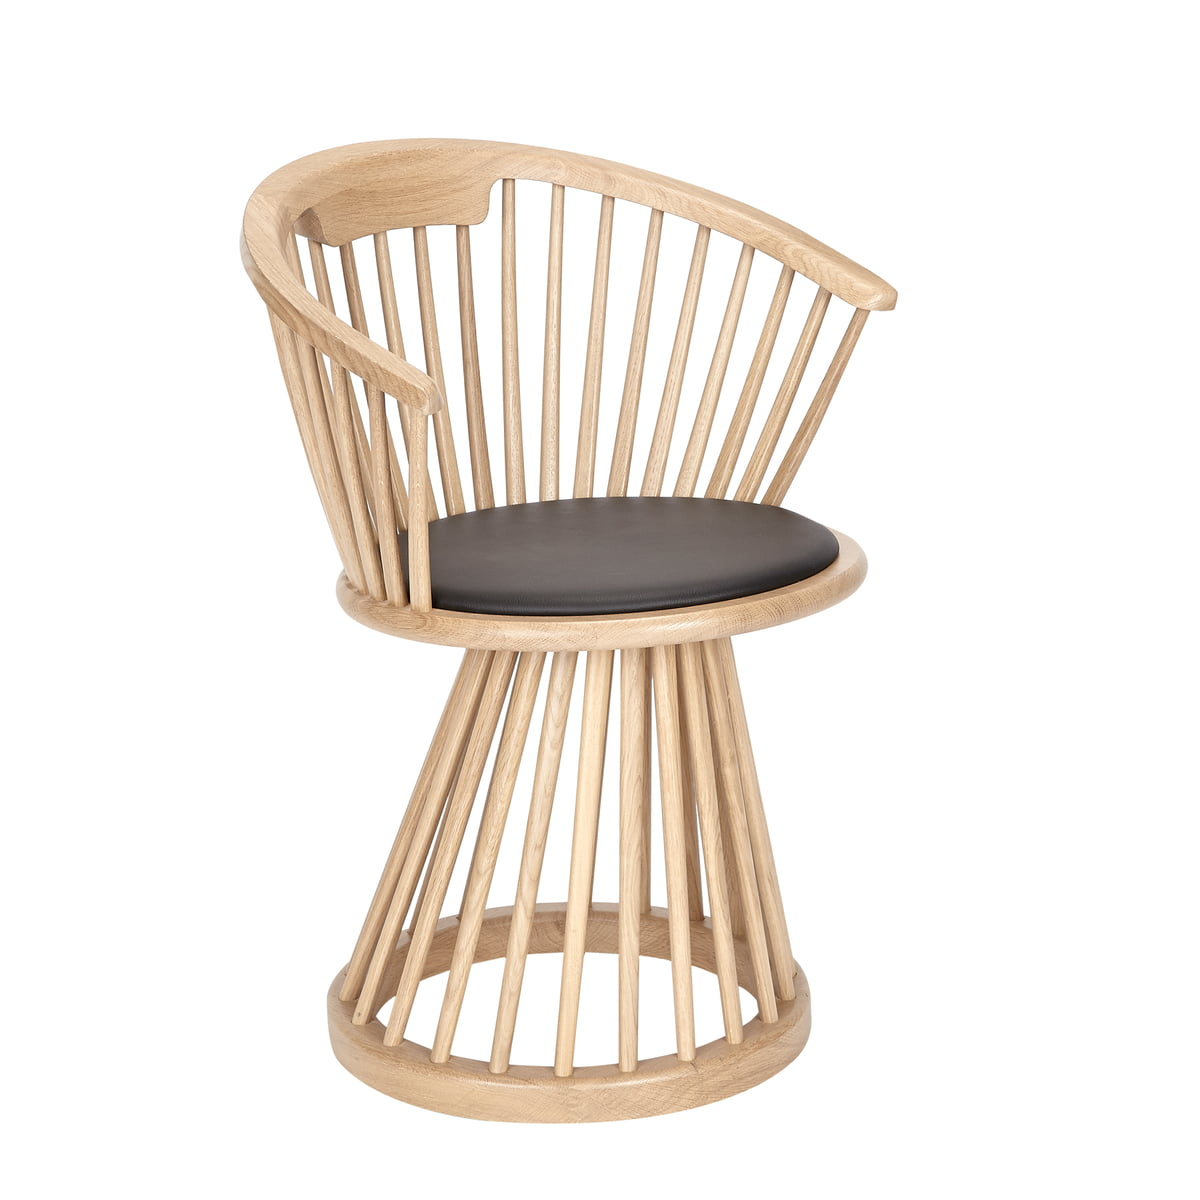 Chaise Fan Dining De Tom Dixon En Chne Naturel